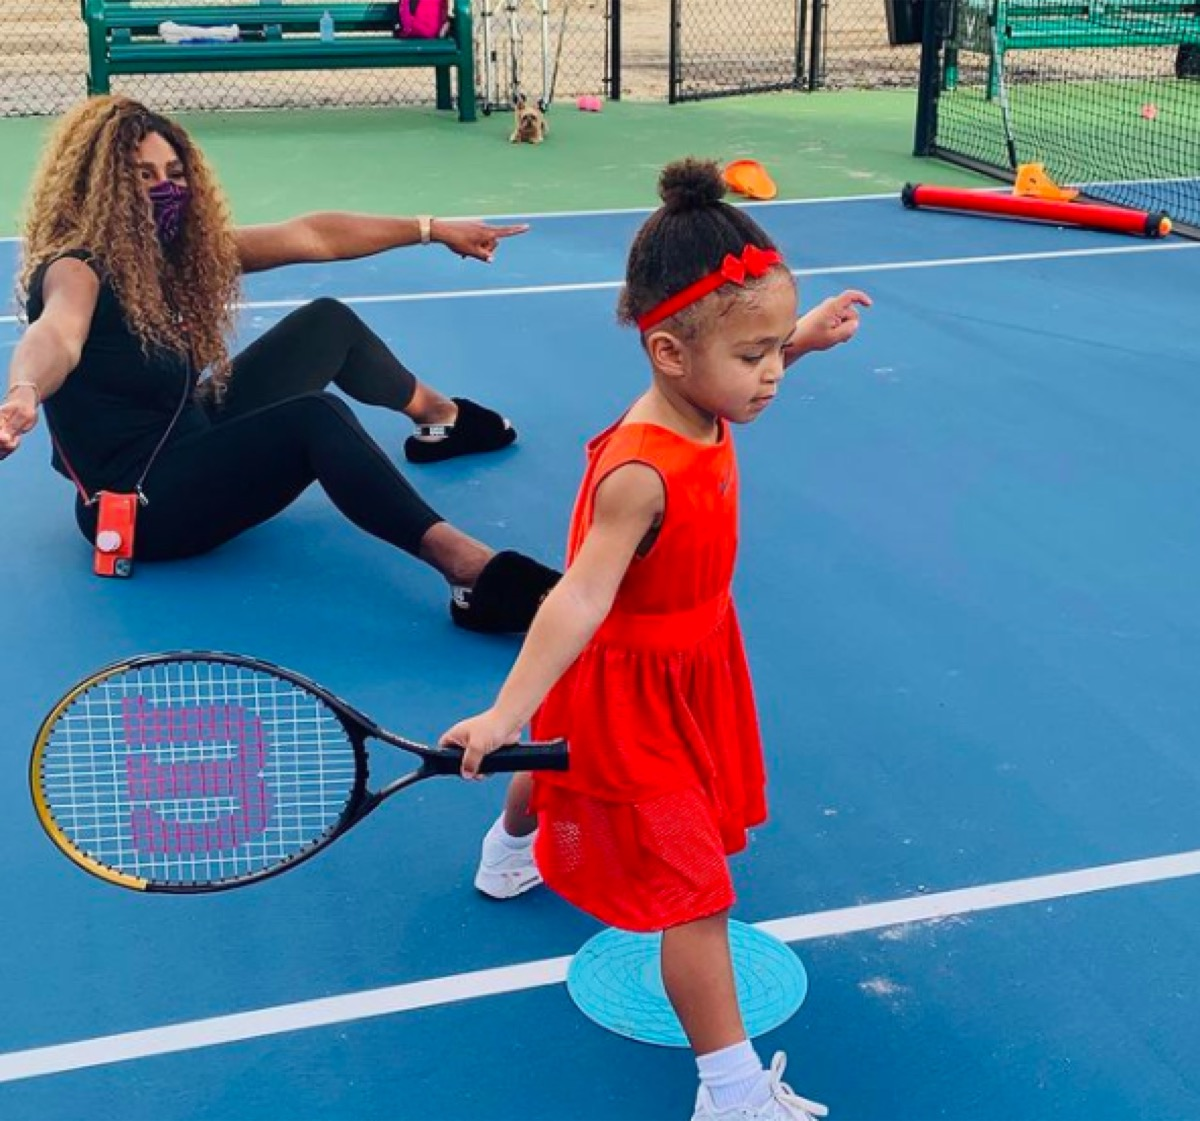 Serena Williams and daughter Alexis